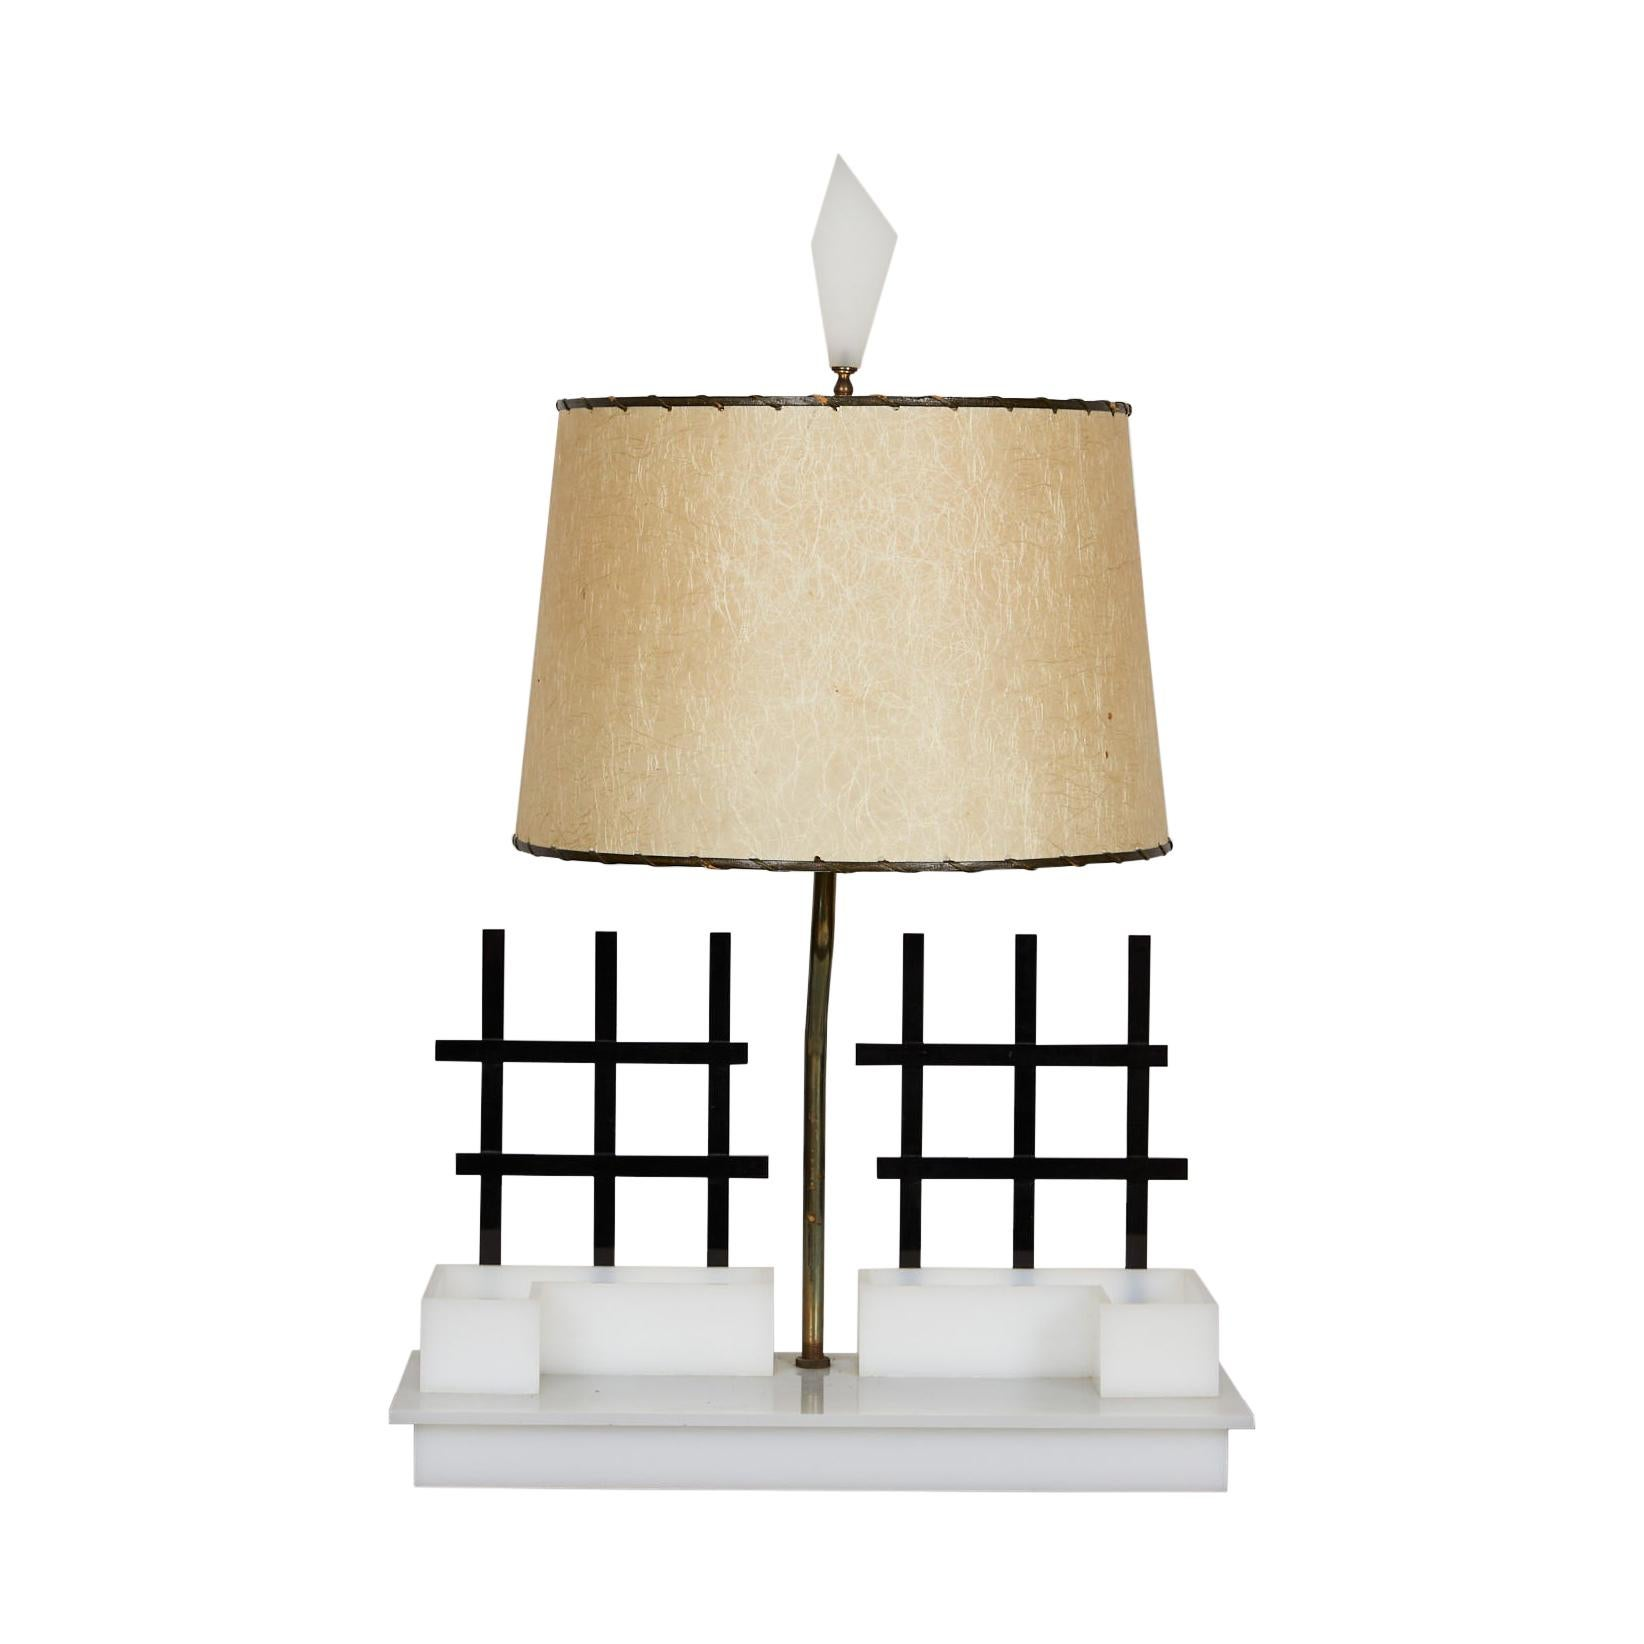 Midcentury Acrylic and Brass Light by Moss Lamps